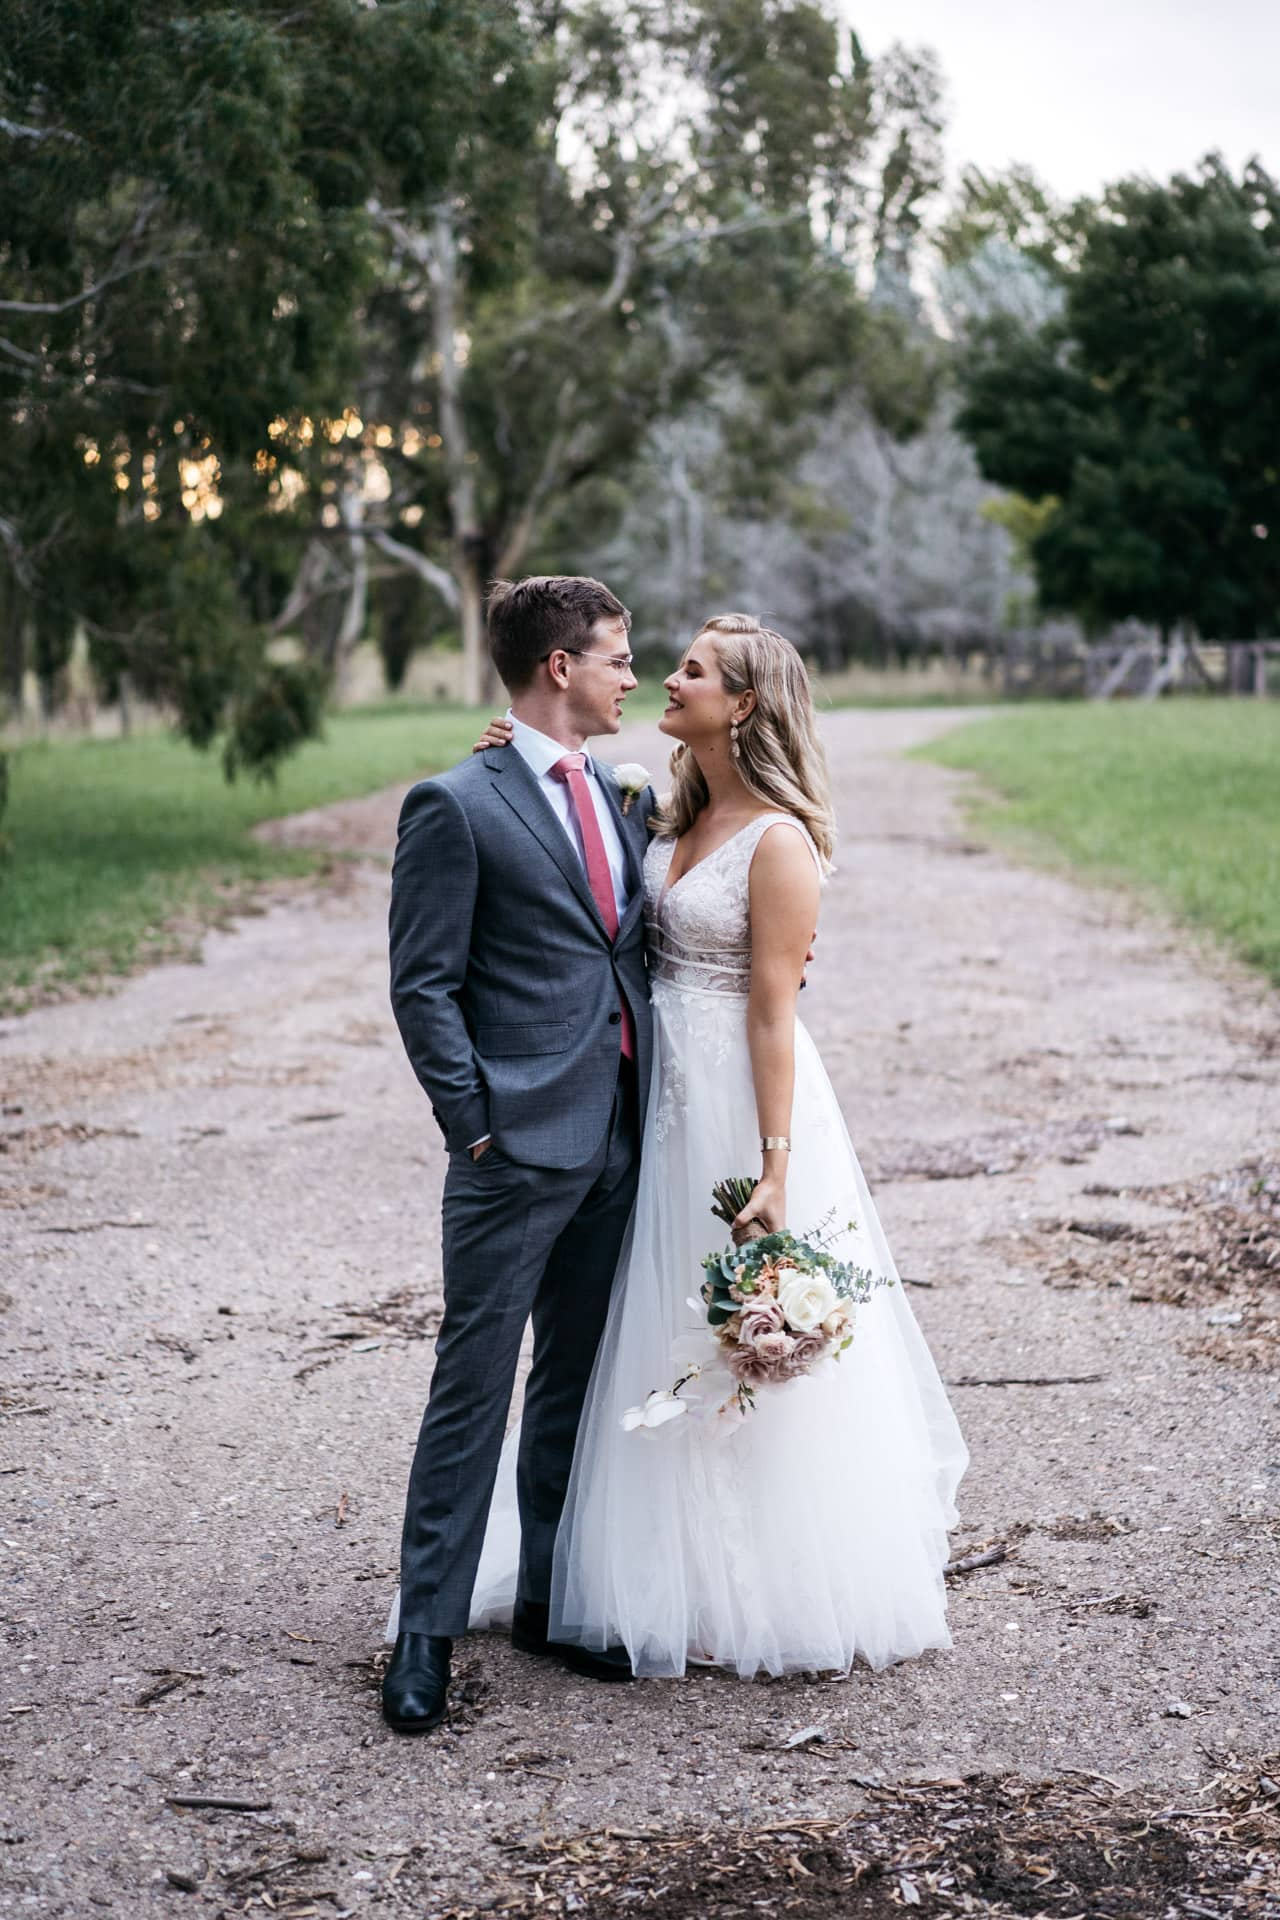 Elegant Rustic Wedding in New South Wales, Australia